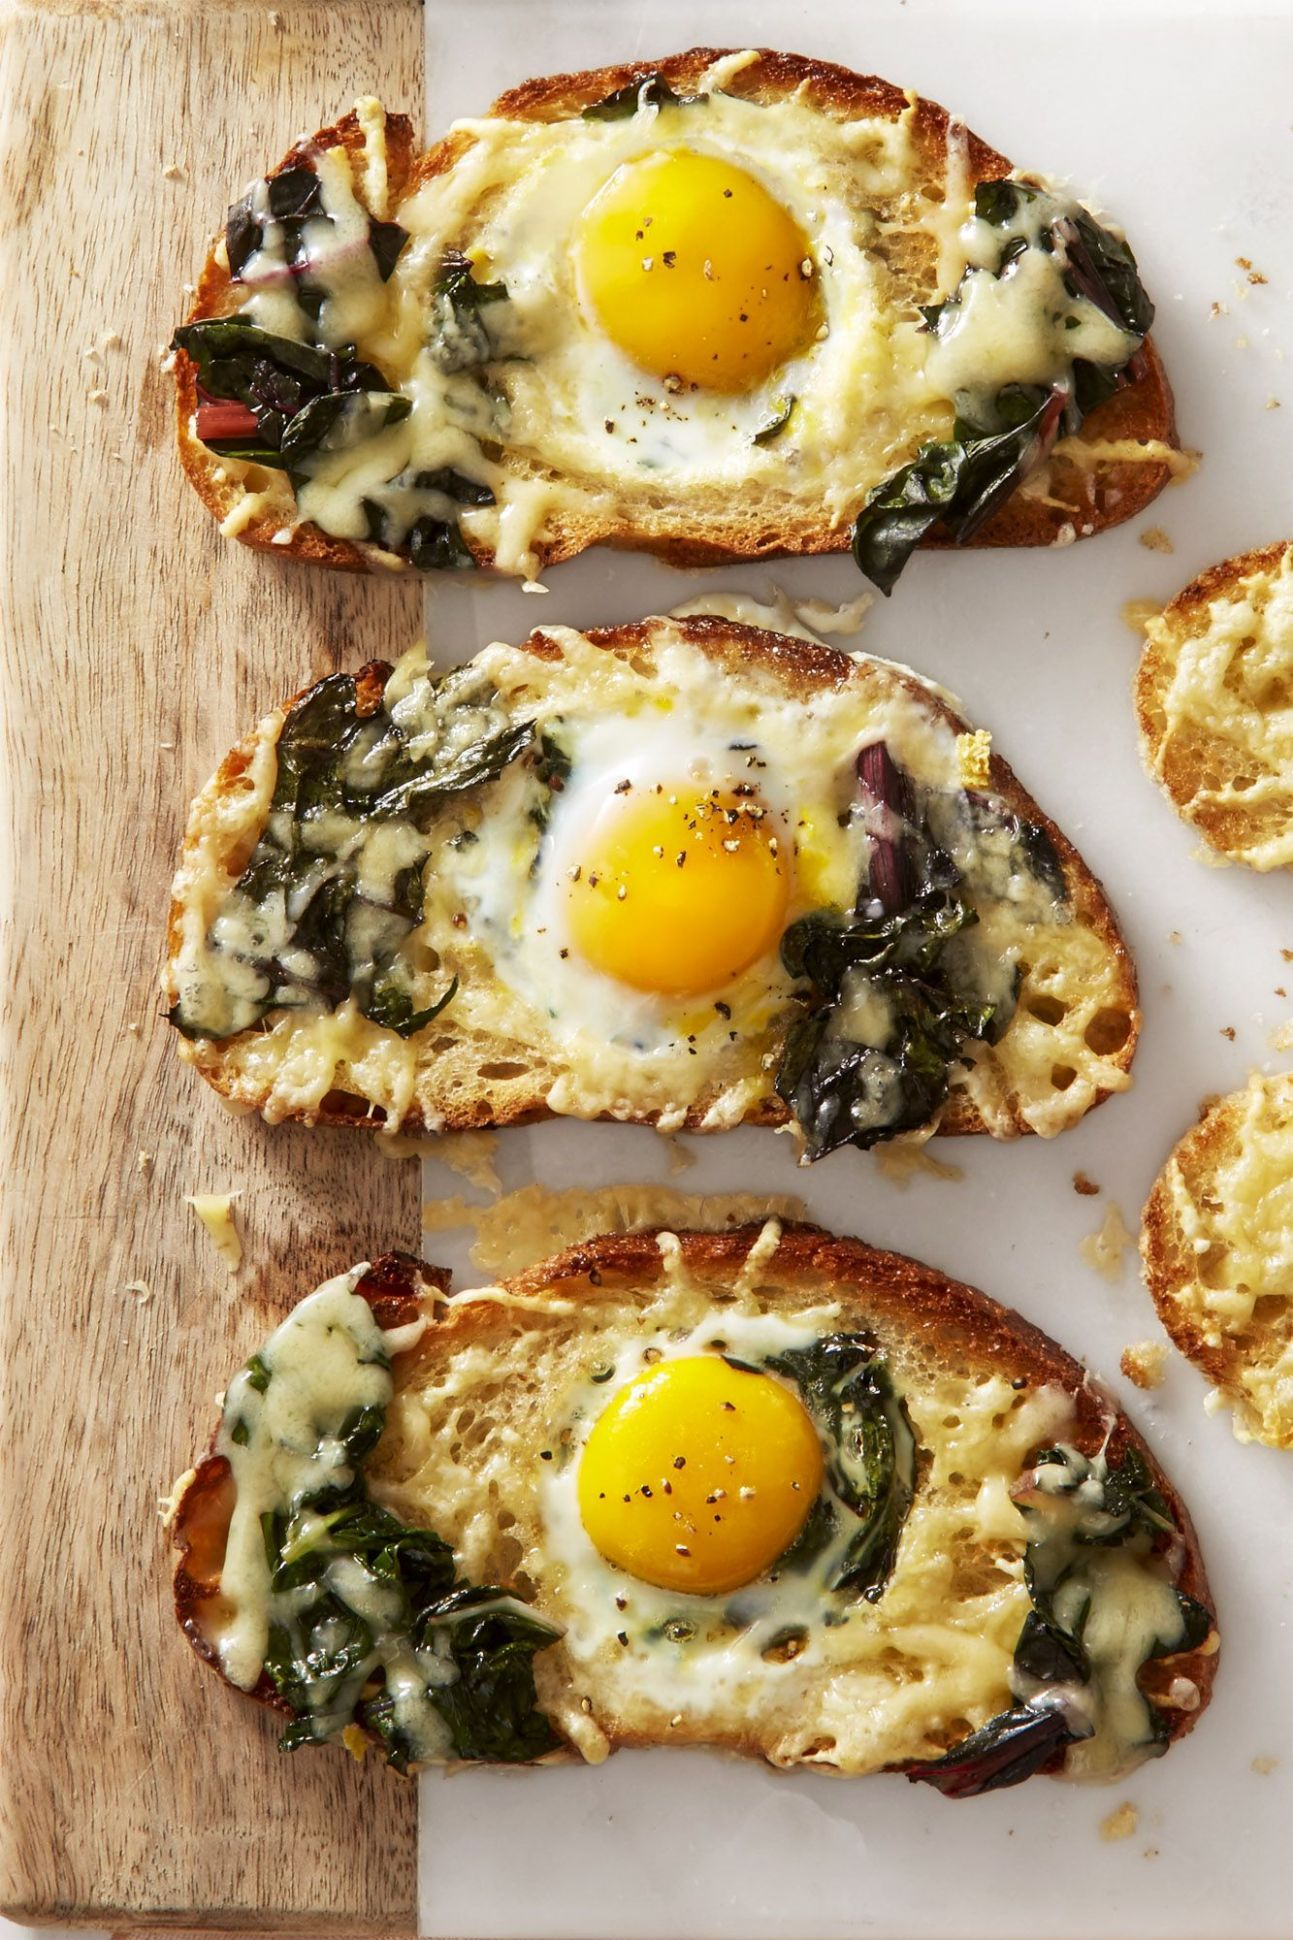 8+ Easy Egg Recipes - Ways to Cook Eggs for Breakfast - Breakfast Recipes Eggs